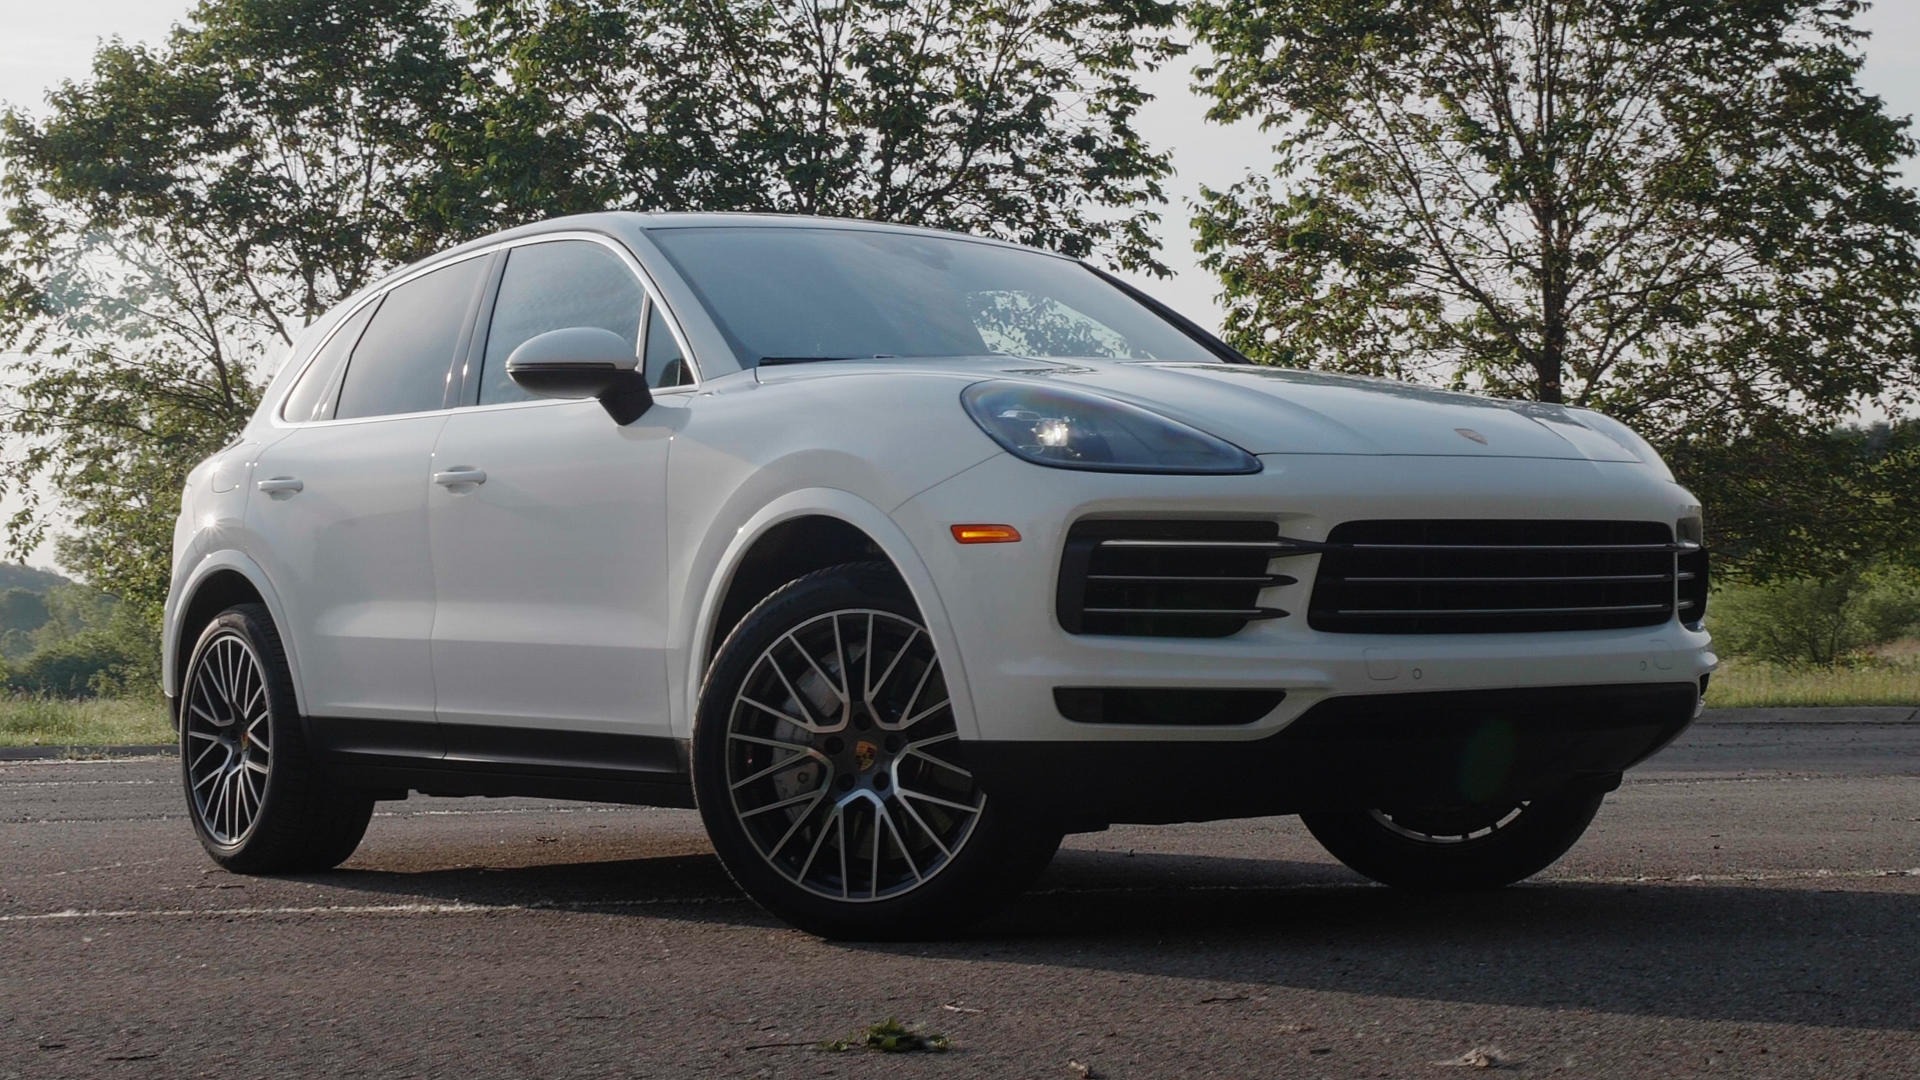 Video: 2019 Porsche Cayenne S: Sporty almost to a fault